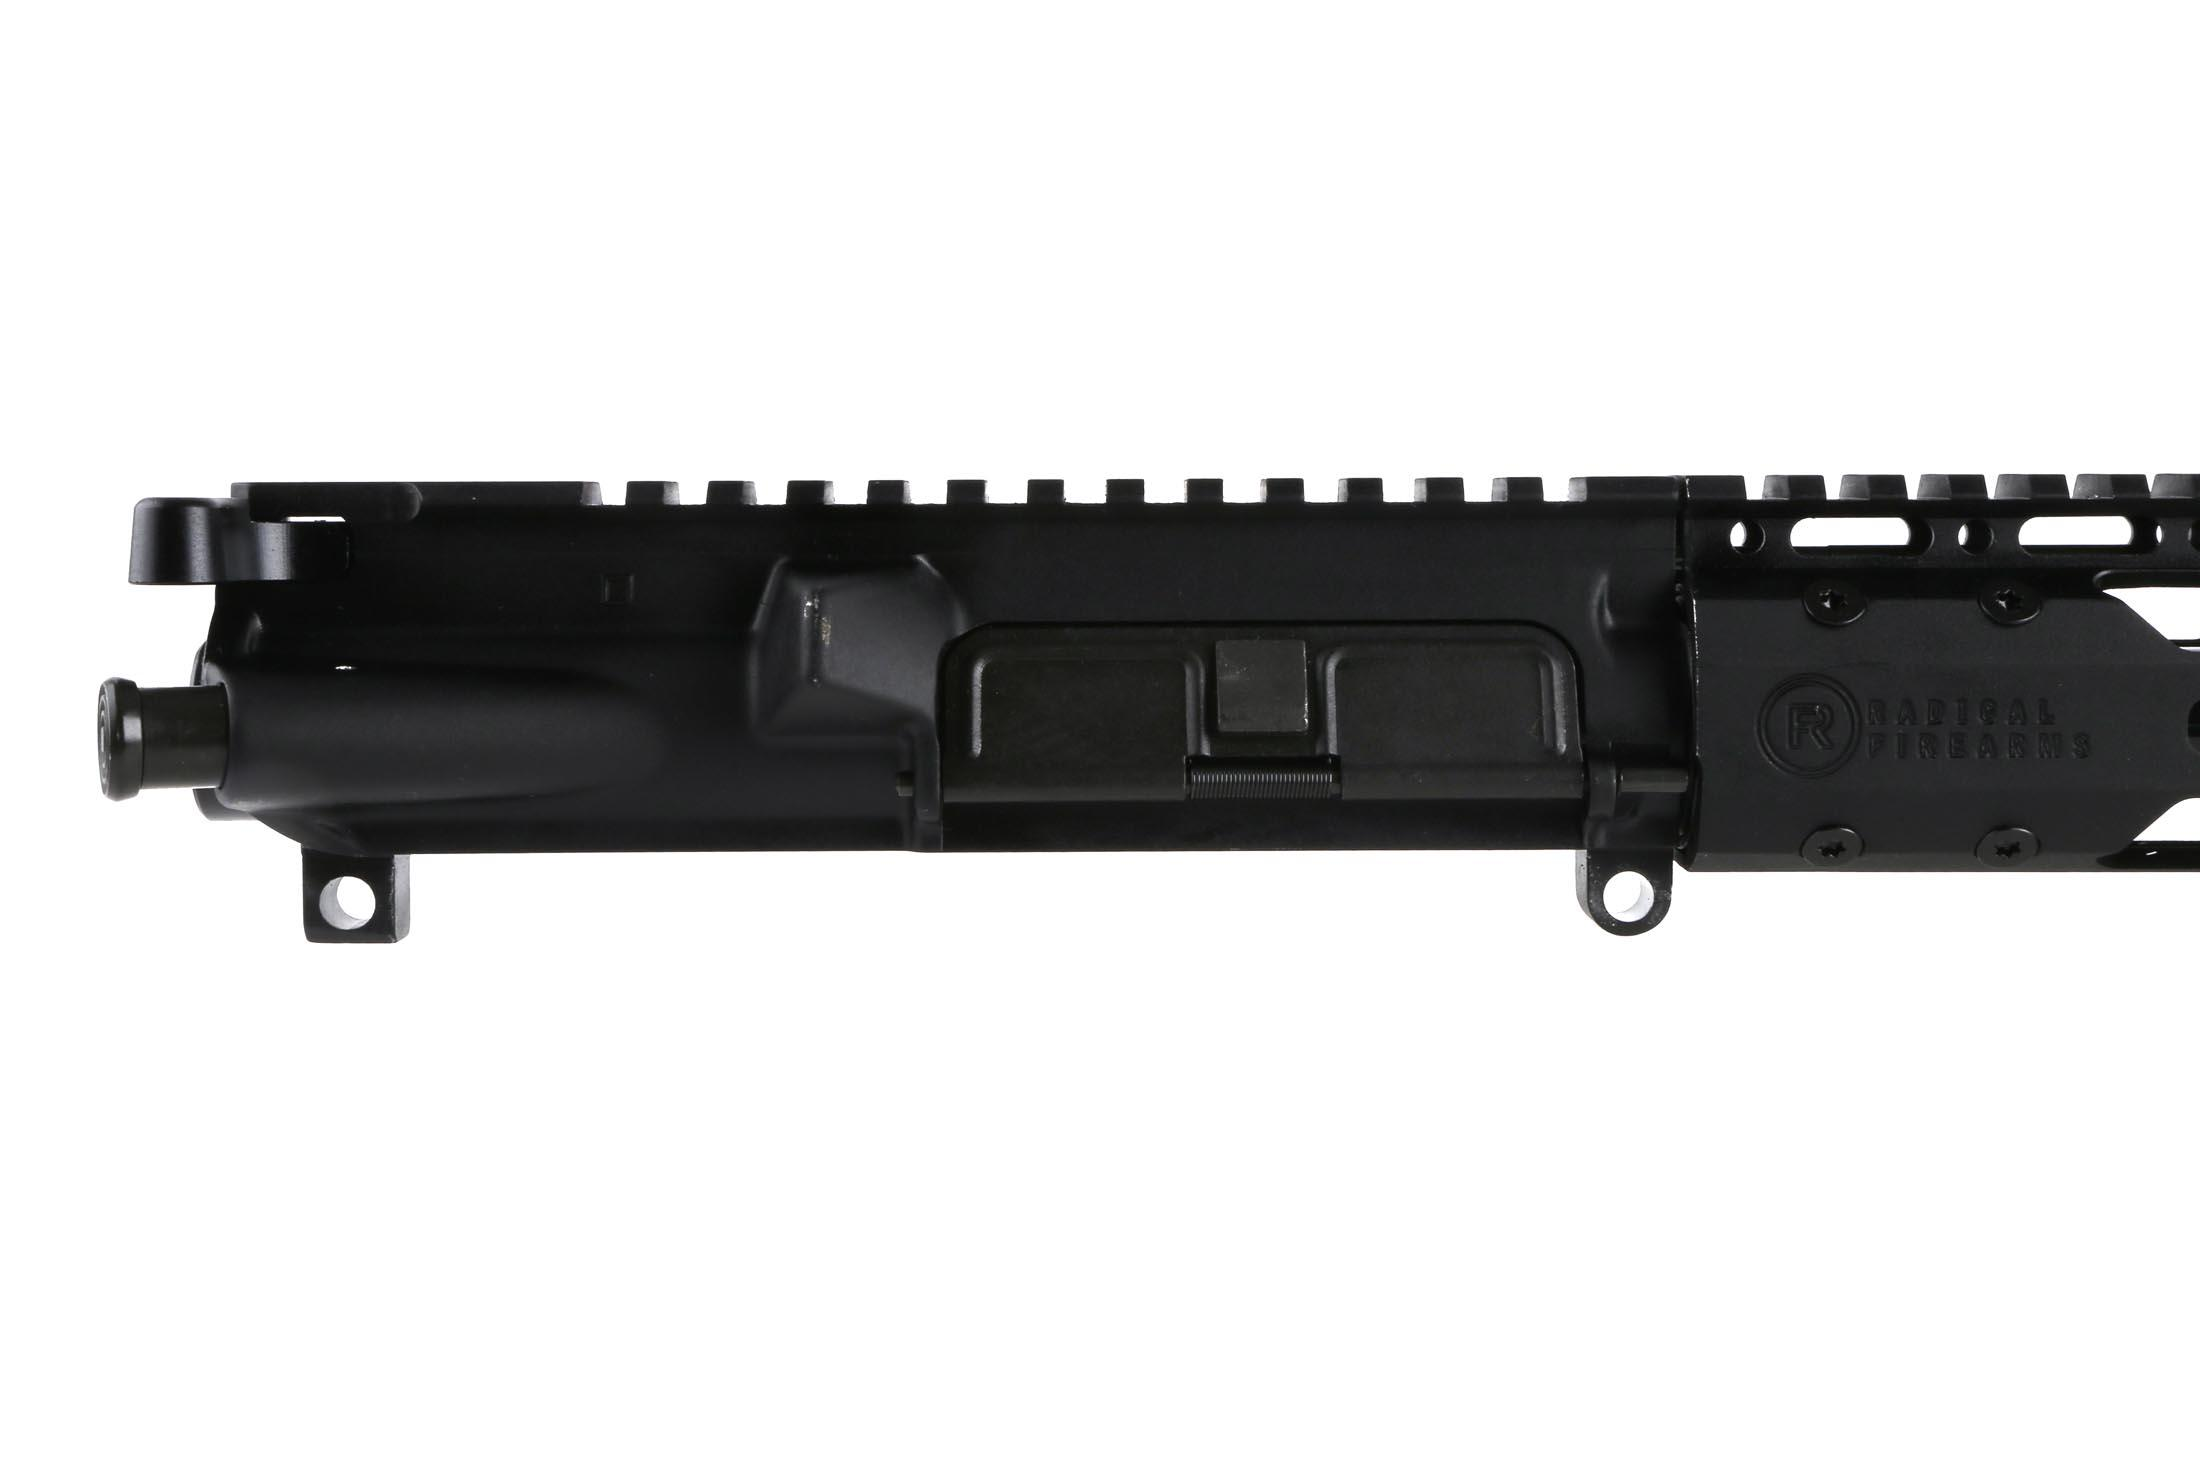 The Radical Firearms SOCOM complete upper features a forged aluminum receiver